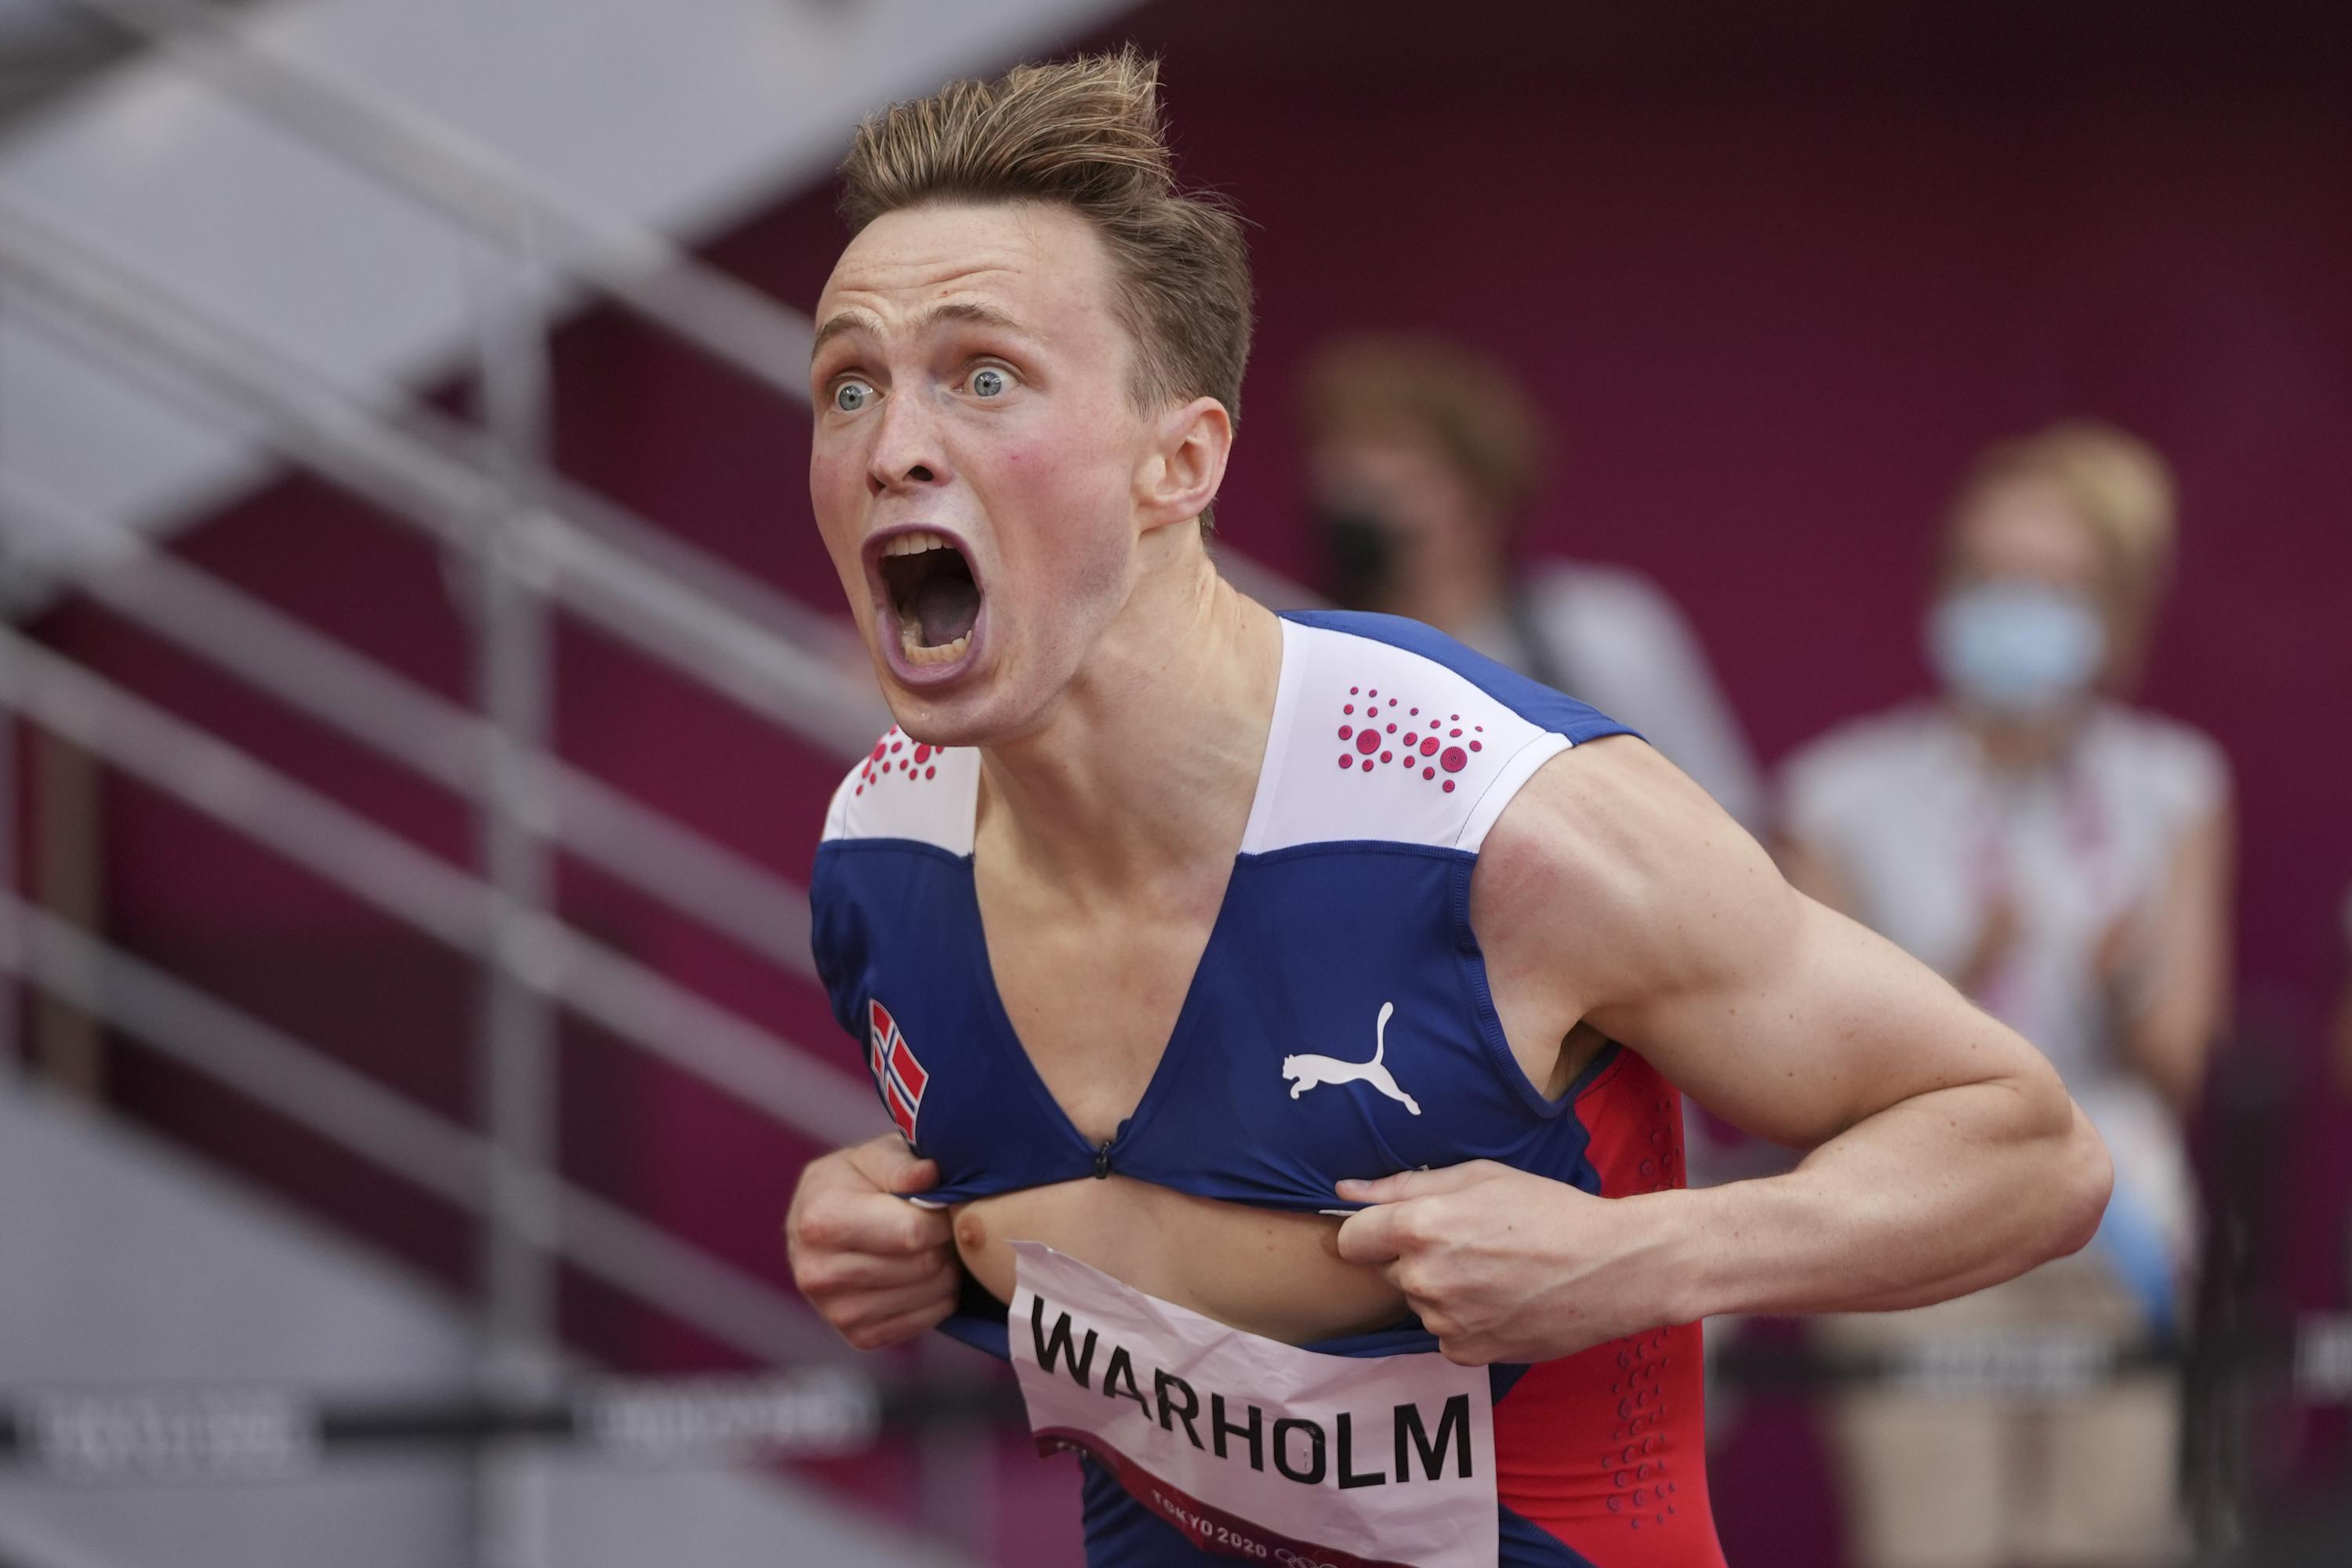 Warholm's evolution: From running in jeans to world records - Associated Press